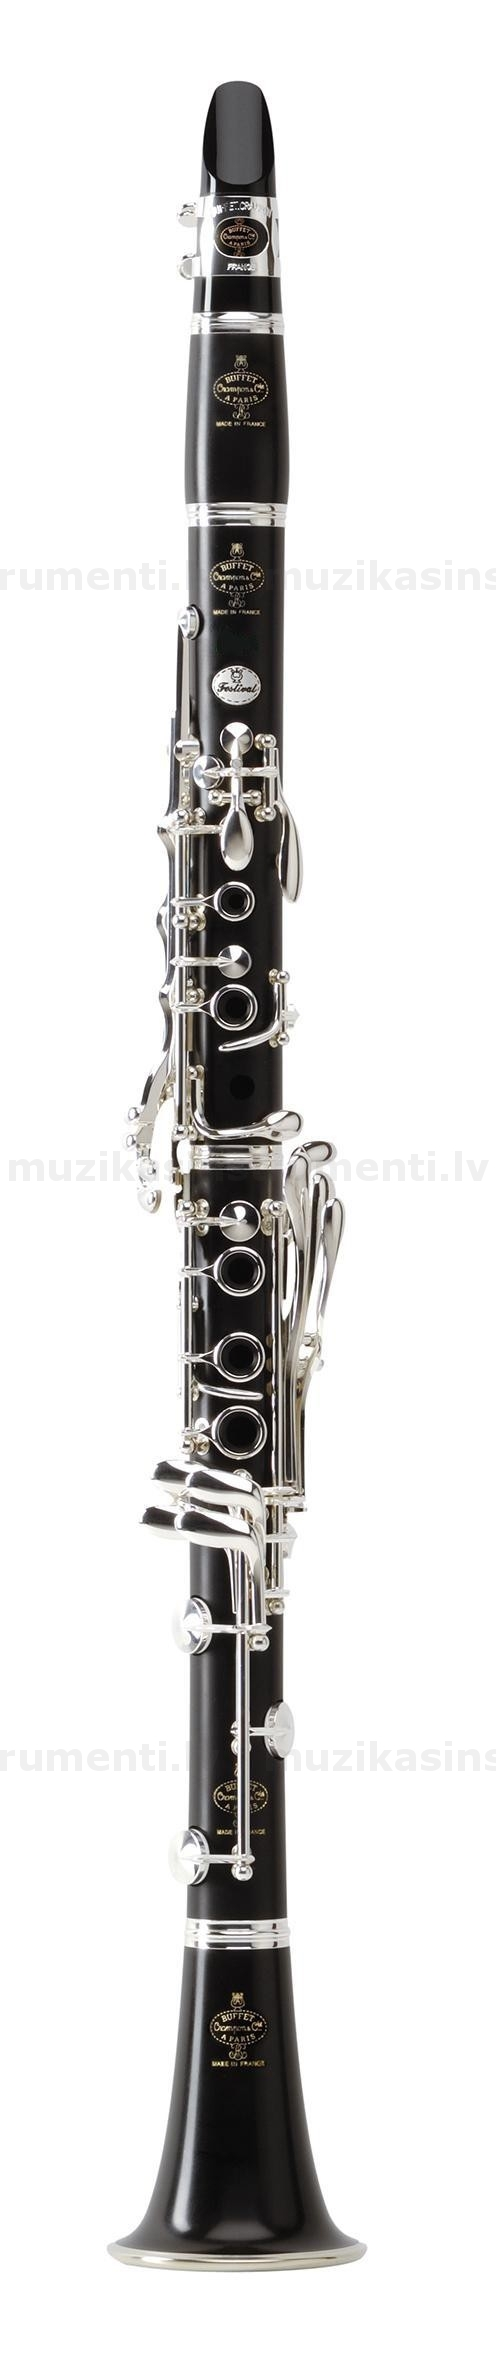 Phenomenal Buffet Crampon Festival Bc1139L 2 0 Bb Bb Clarinet We Offer Wide Range Of Music Instruments Maintenance And Repairment Works Download Free Architecture Designs Scobabritishbridgeorg